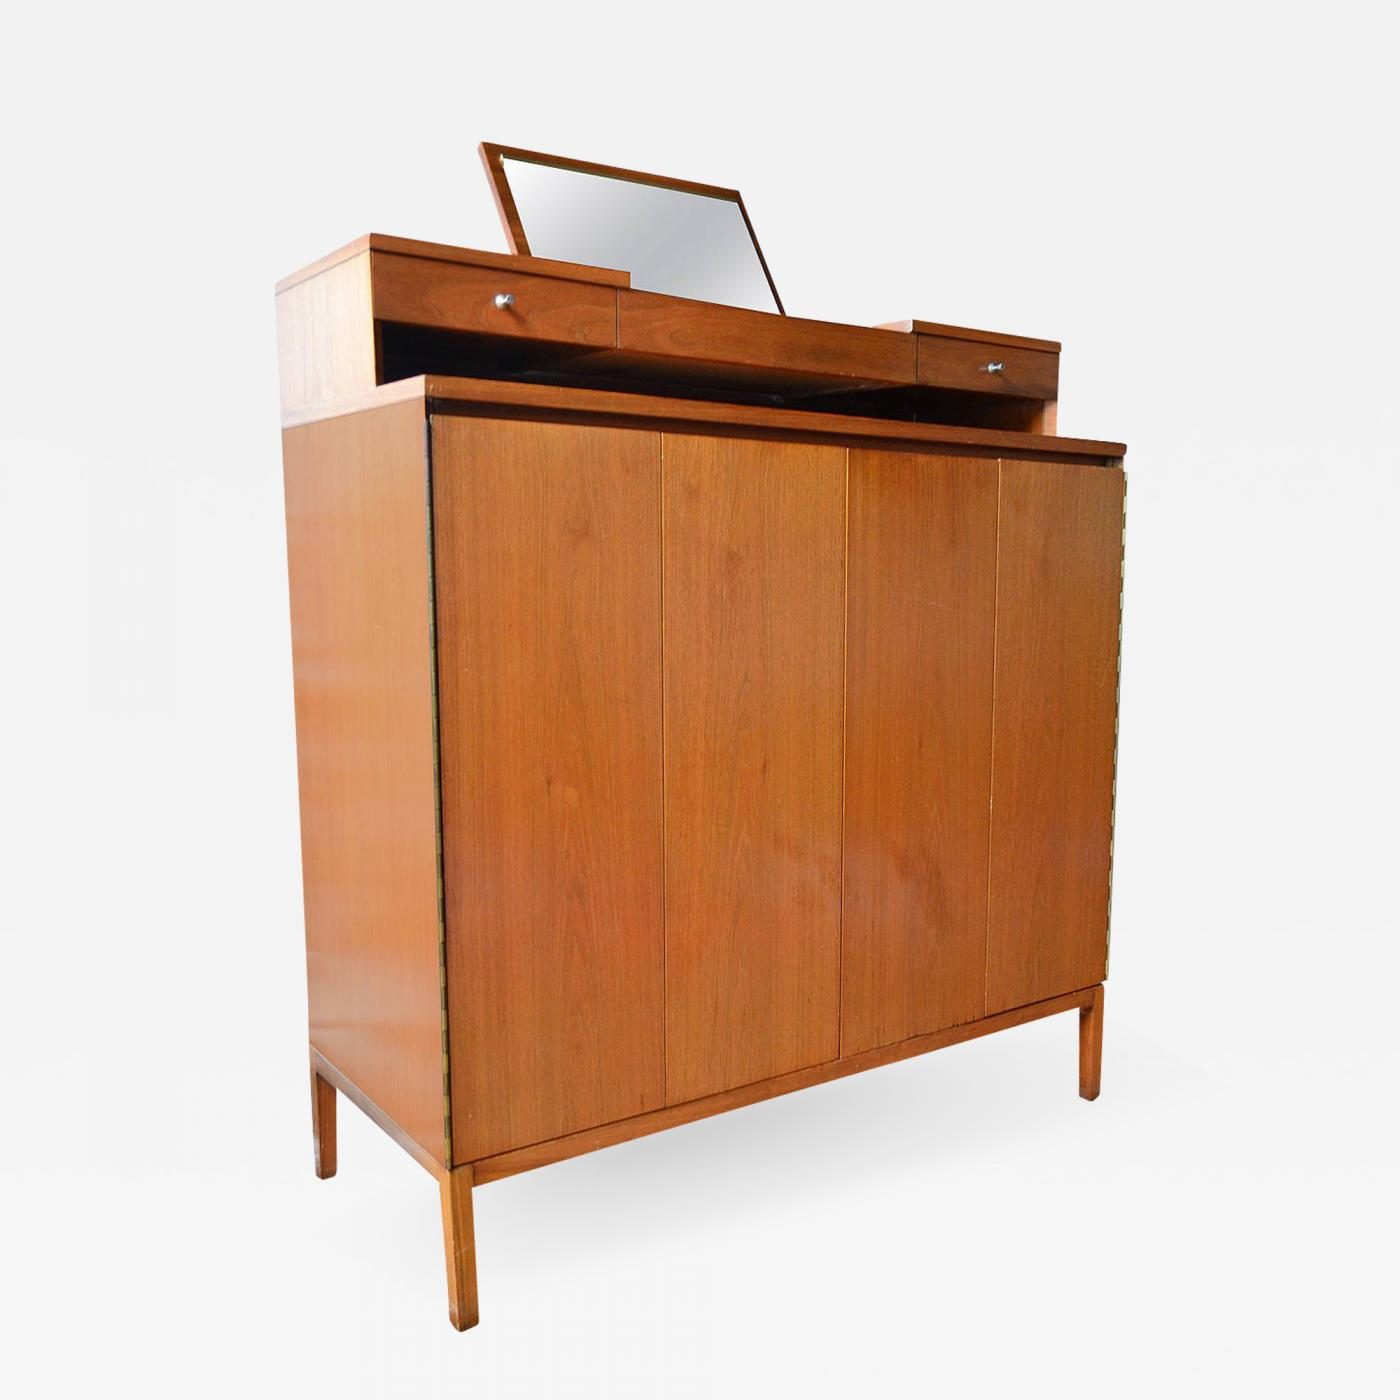 Paul McCobb Irwin Collection For Calvin Furniture Gentlemanu0027s Tall Chest,  1956